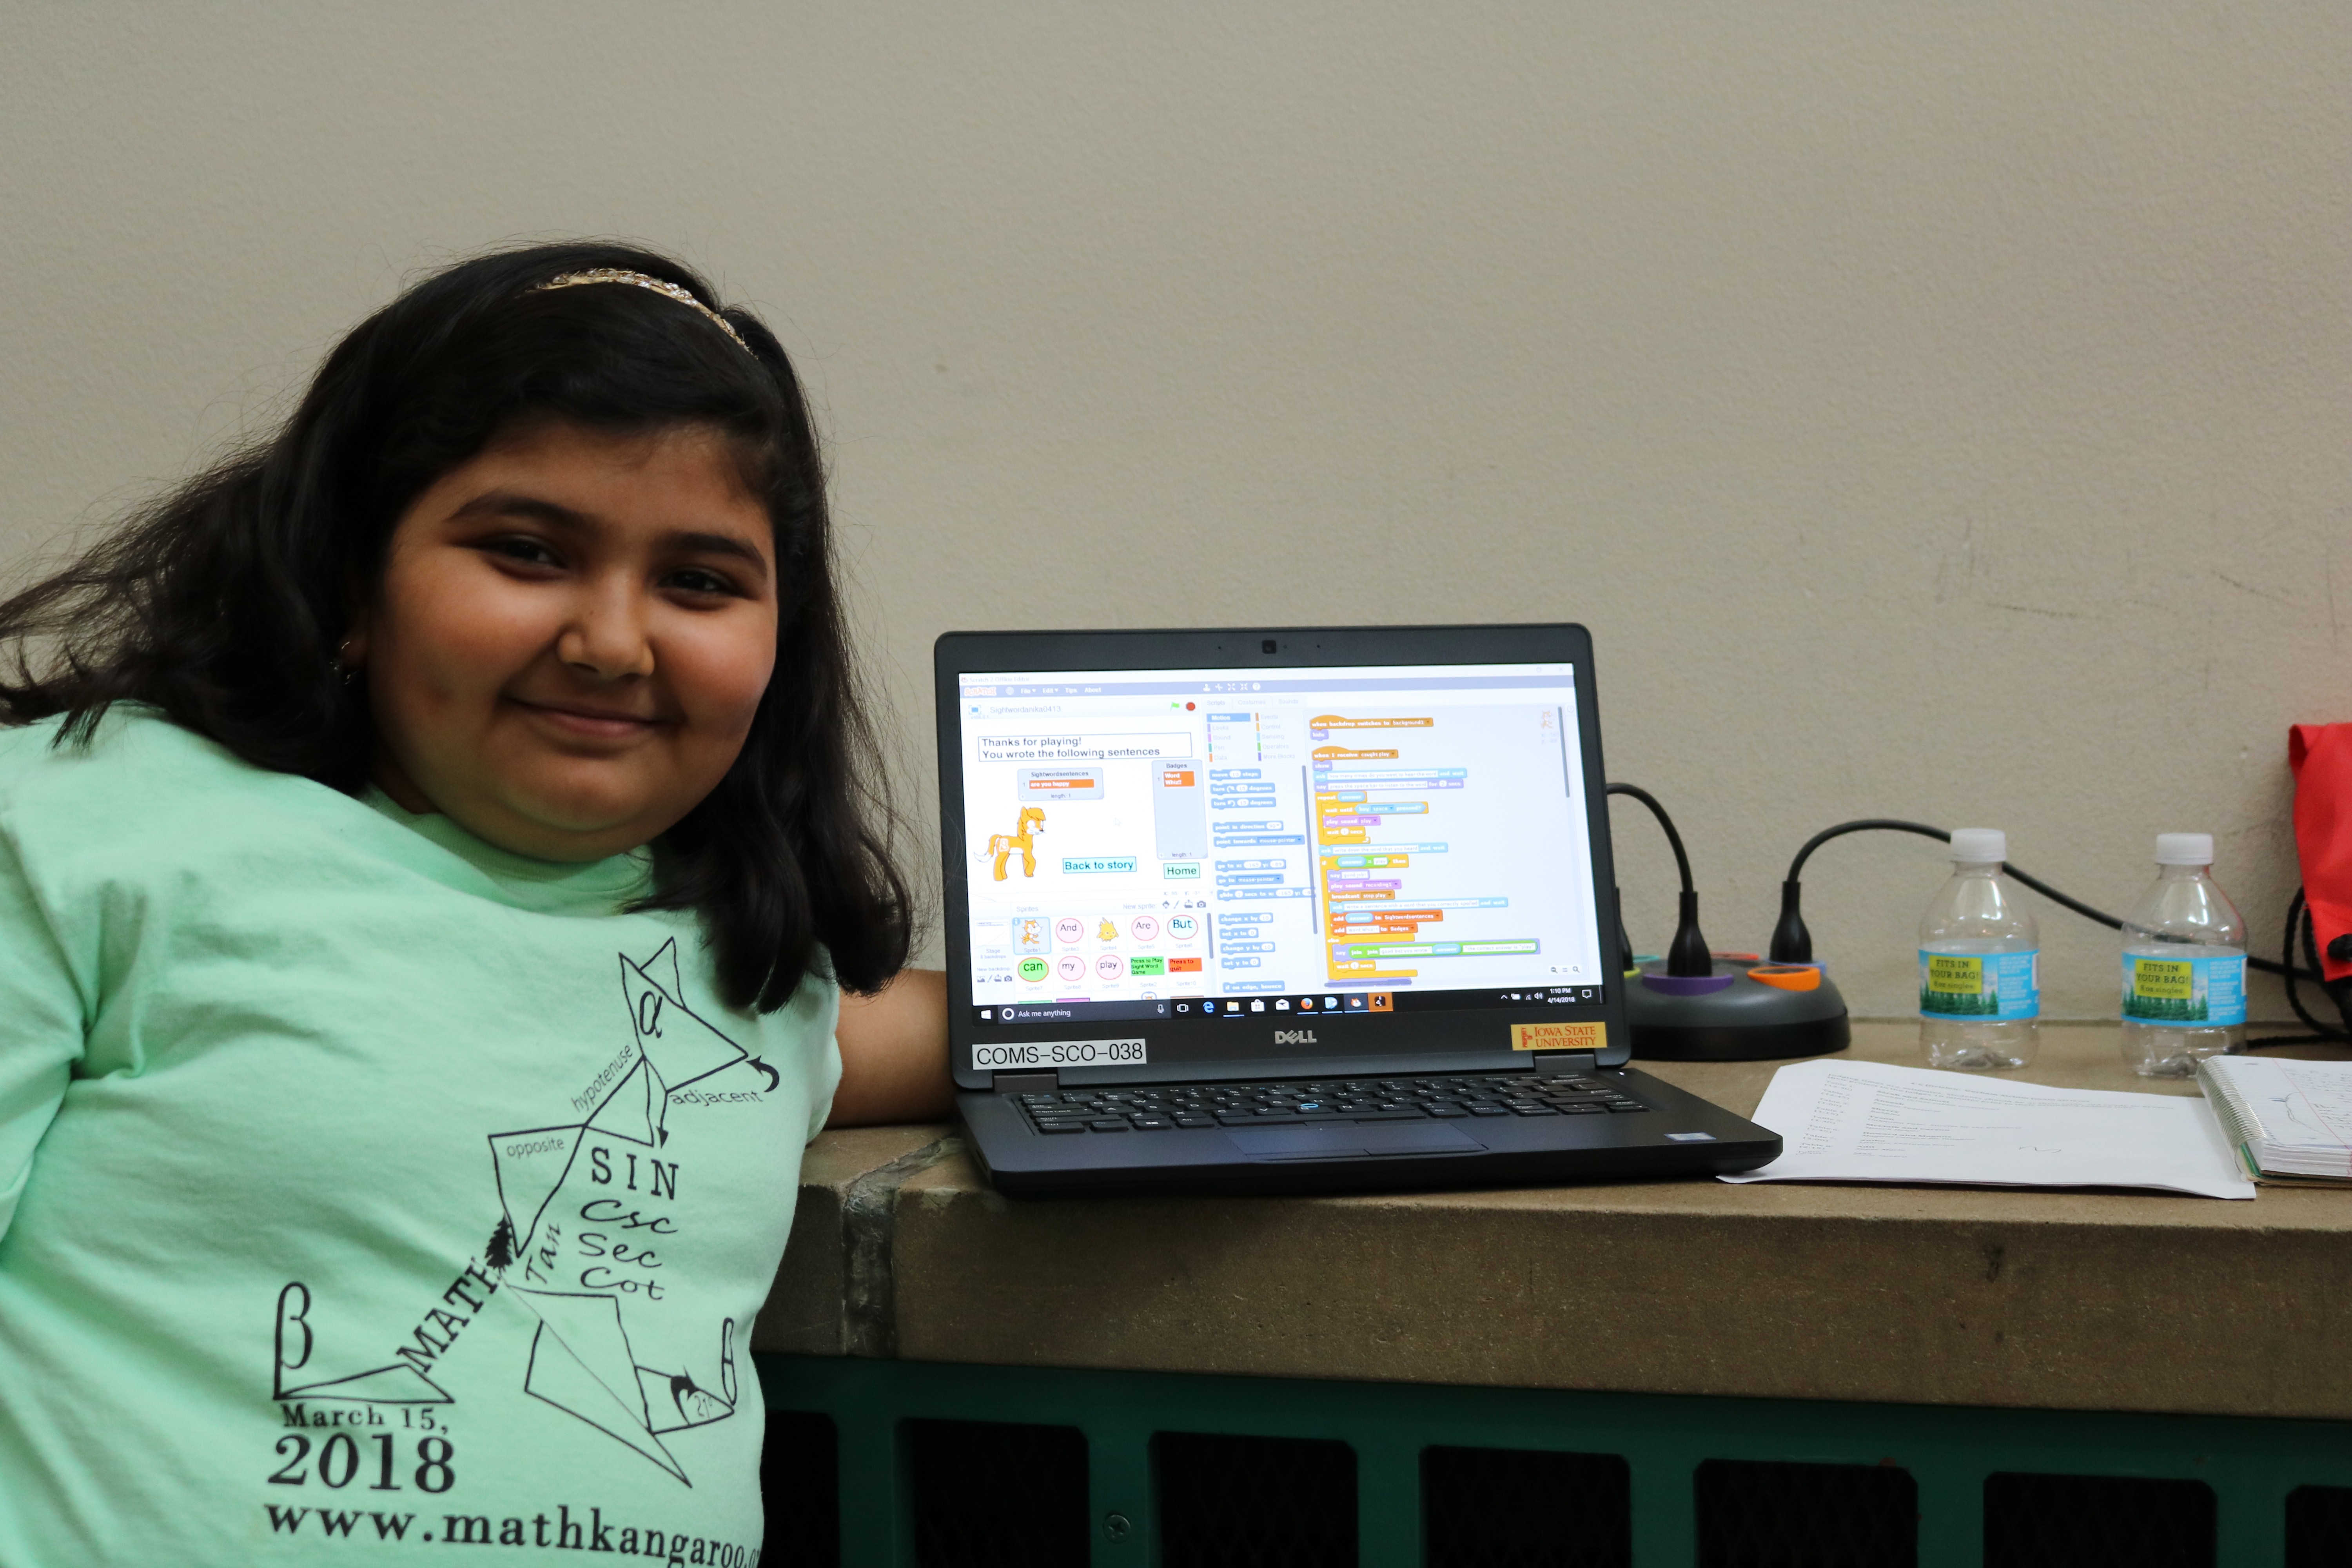 Anika Shrotriya with her literacy learning game.